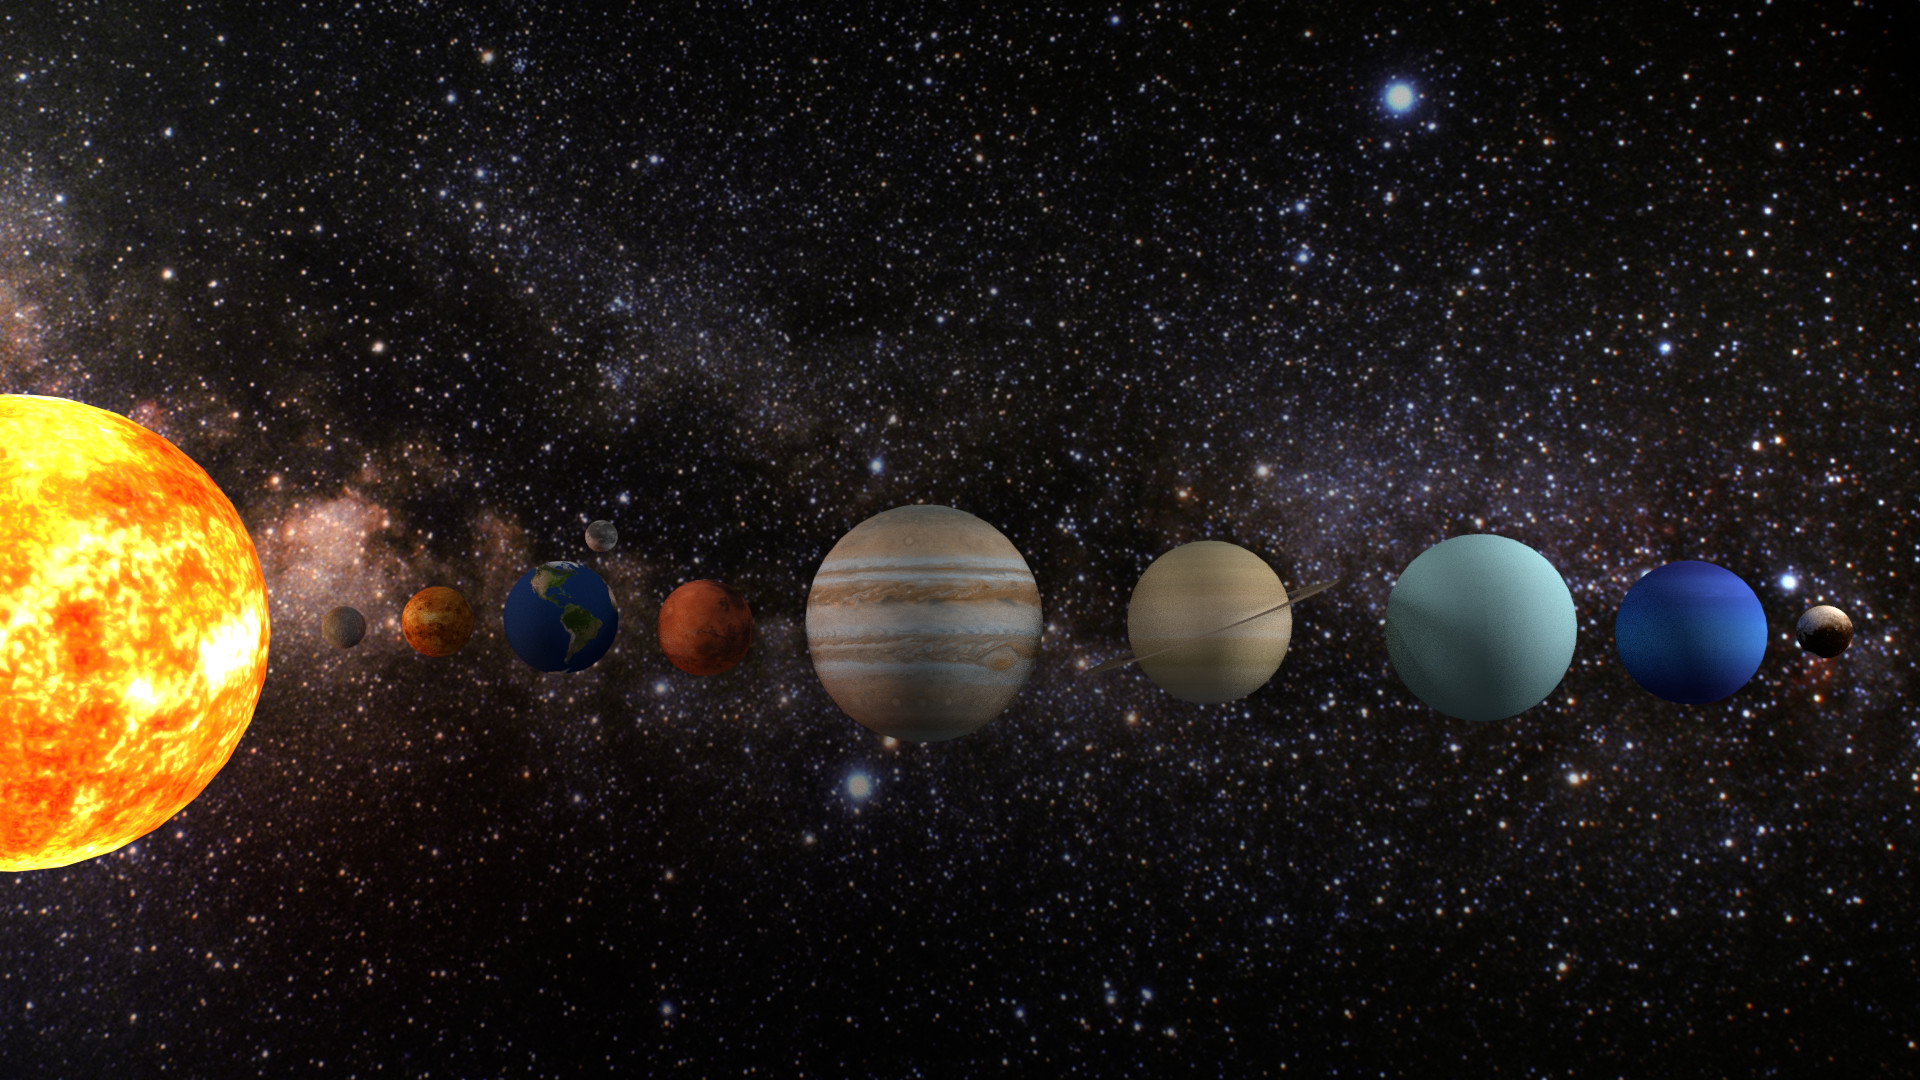 solar system pictures - HD1920×1080